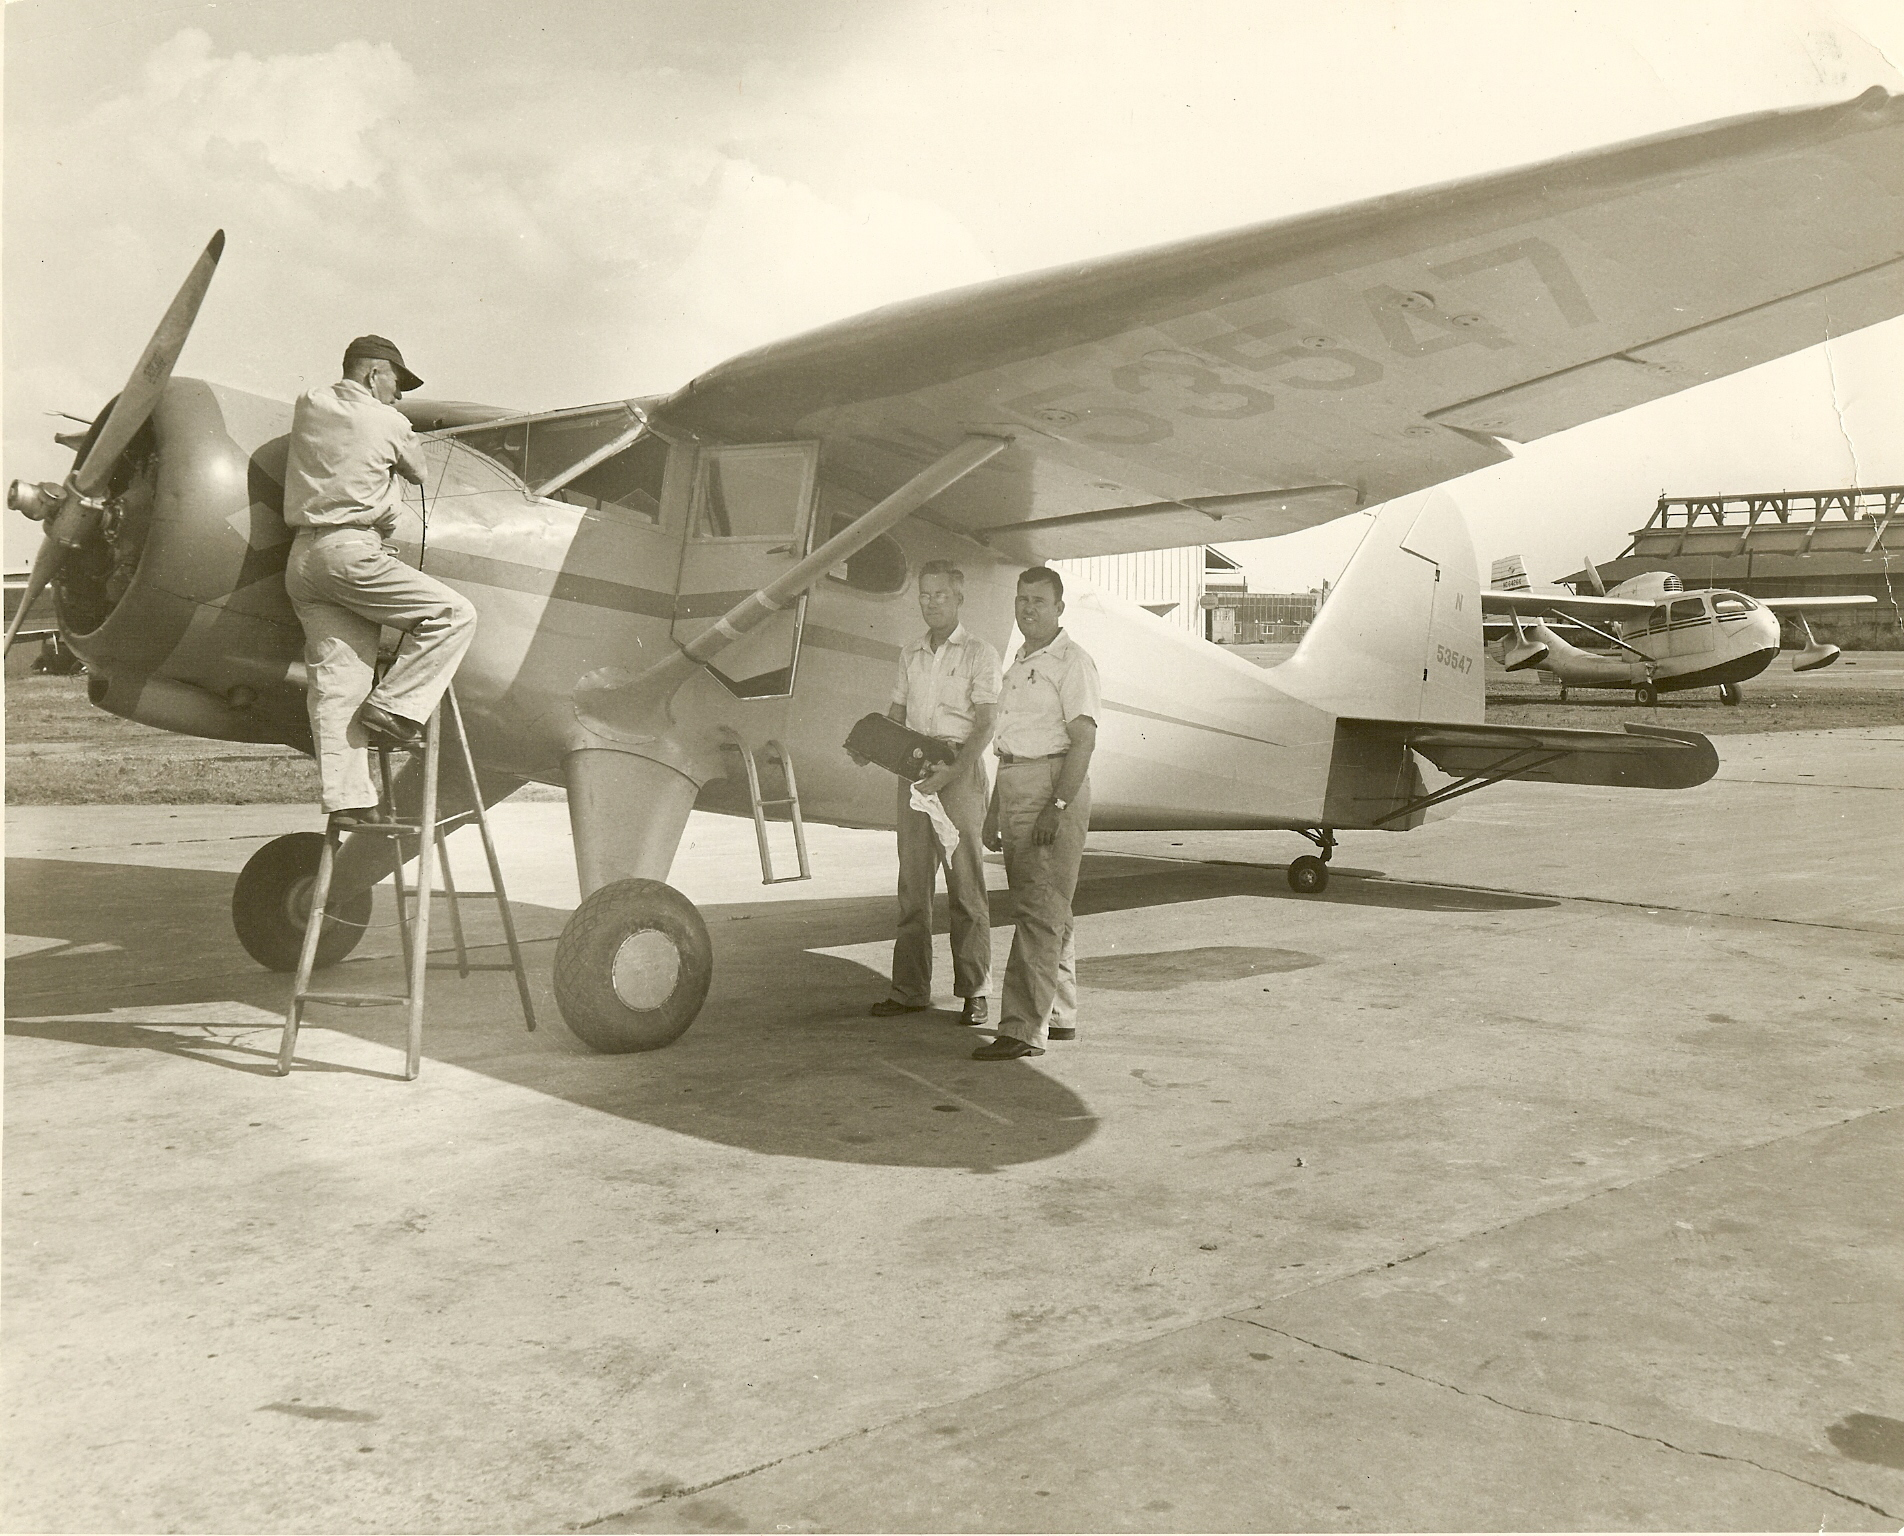 Central Flying Service: Aircraft Maintenance, Repair & Overhaul